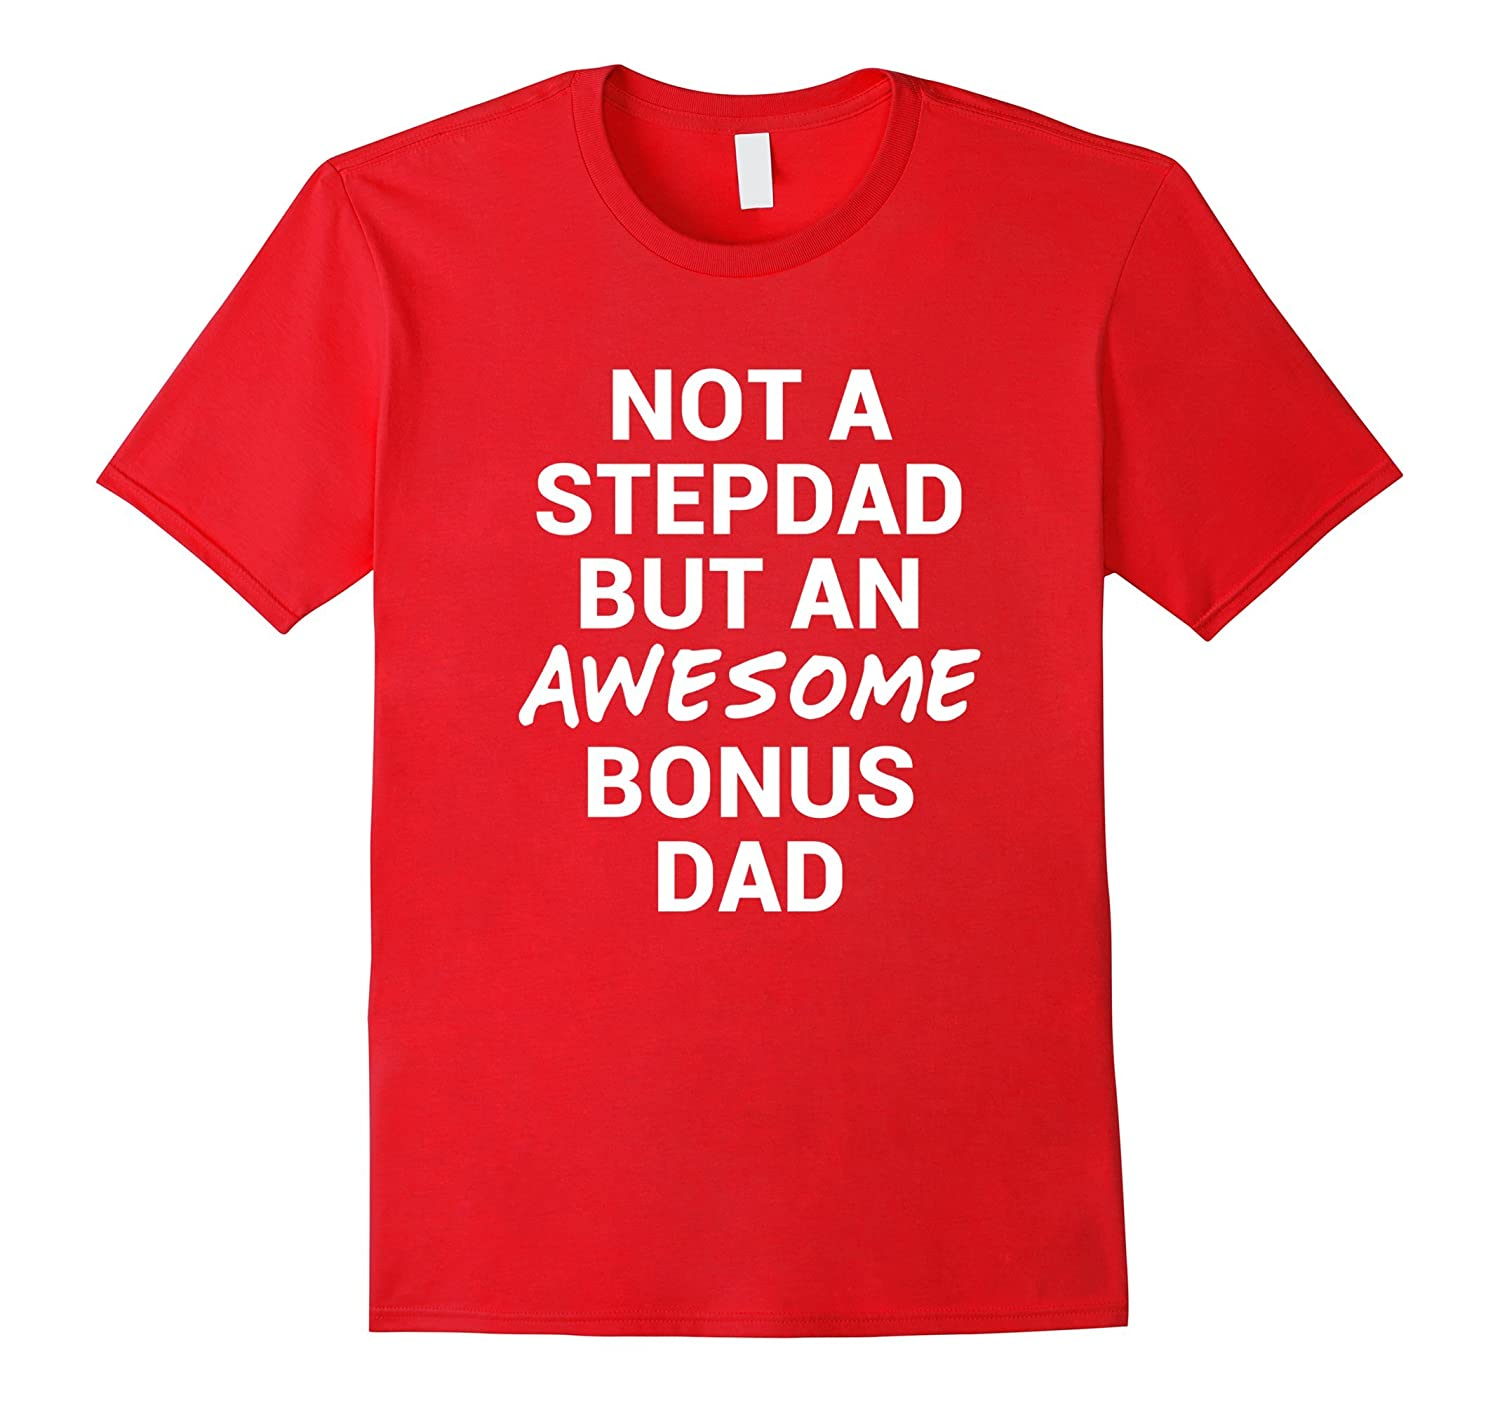 Awesome Bonus Dad Shirt Best Fathers Day Gift for Stepdad-CD